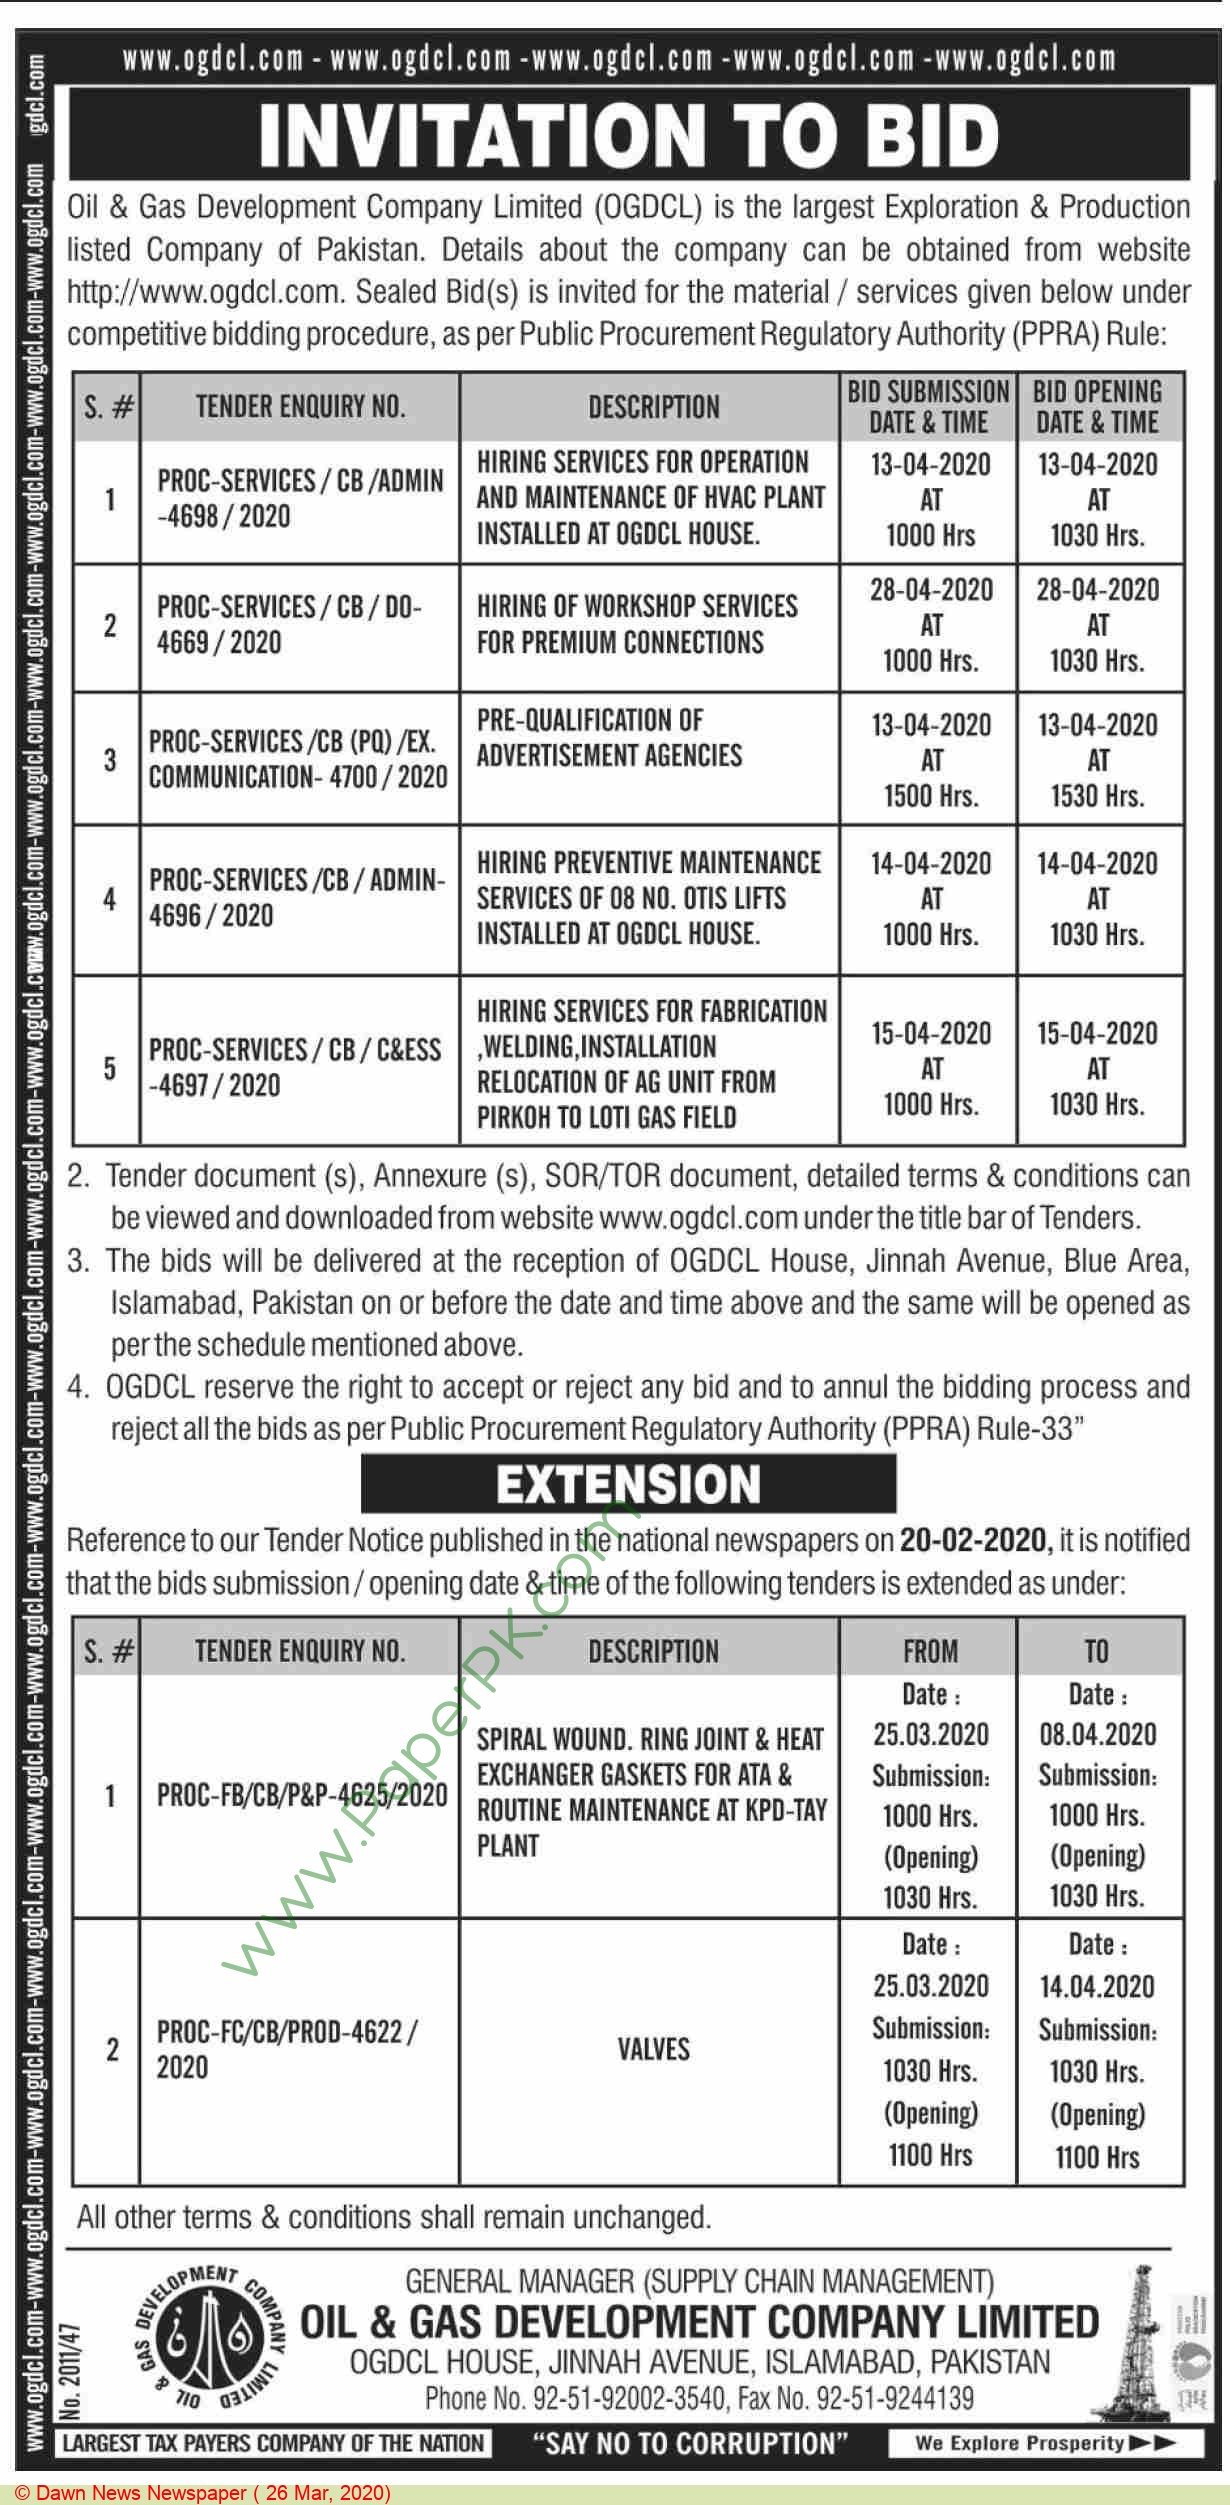 Ogdcl Islamabad Tender Notice.